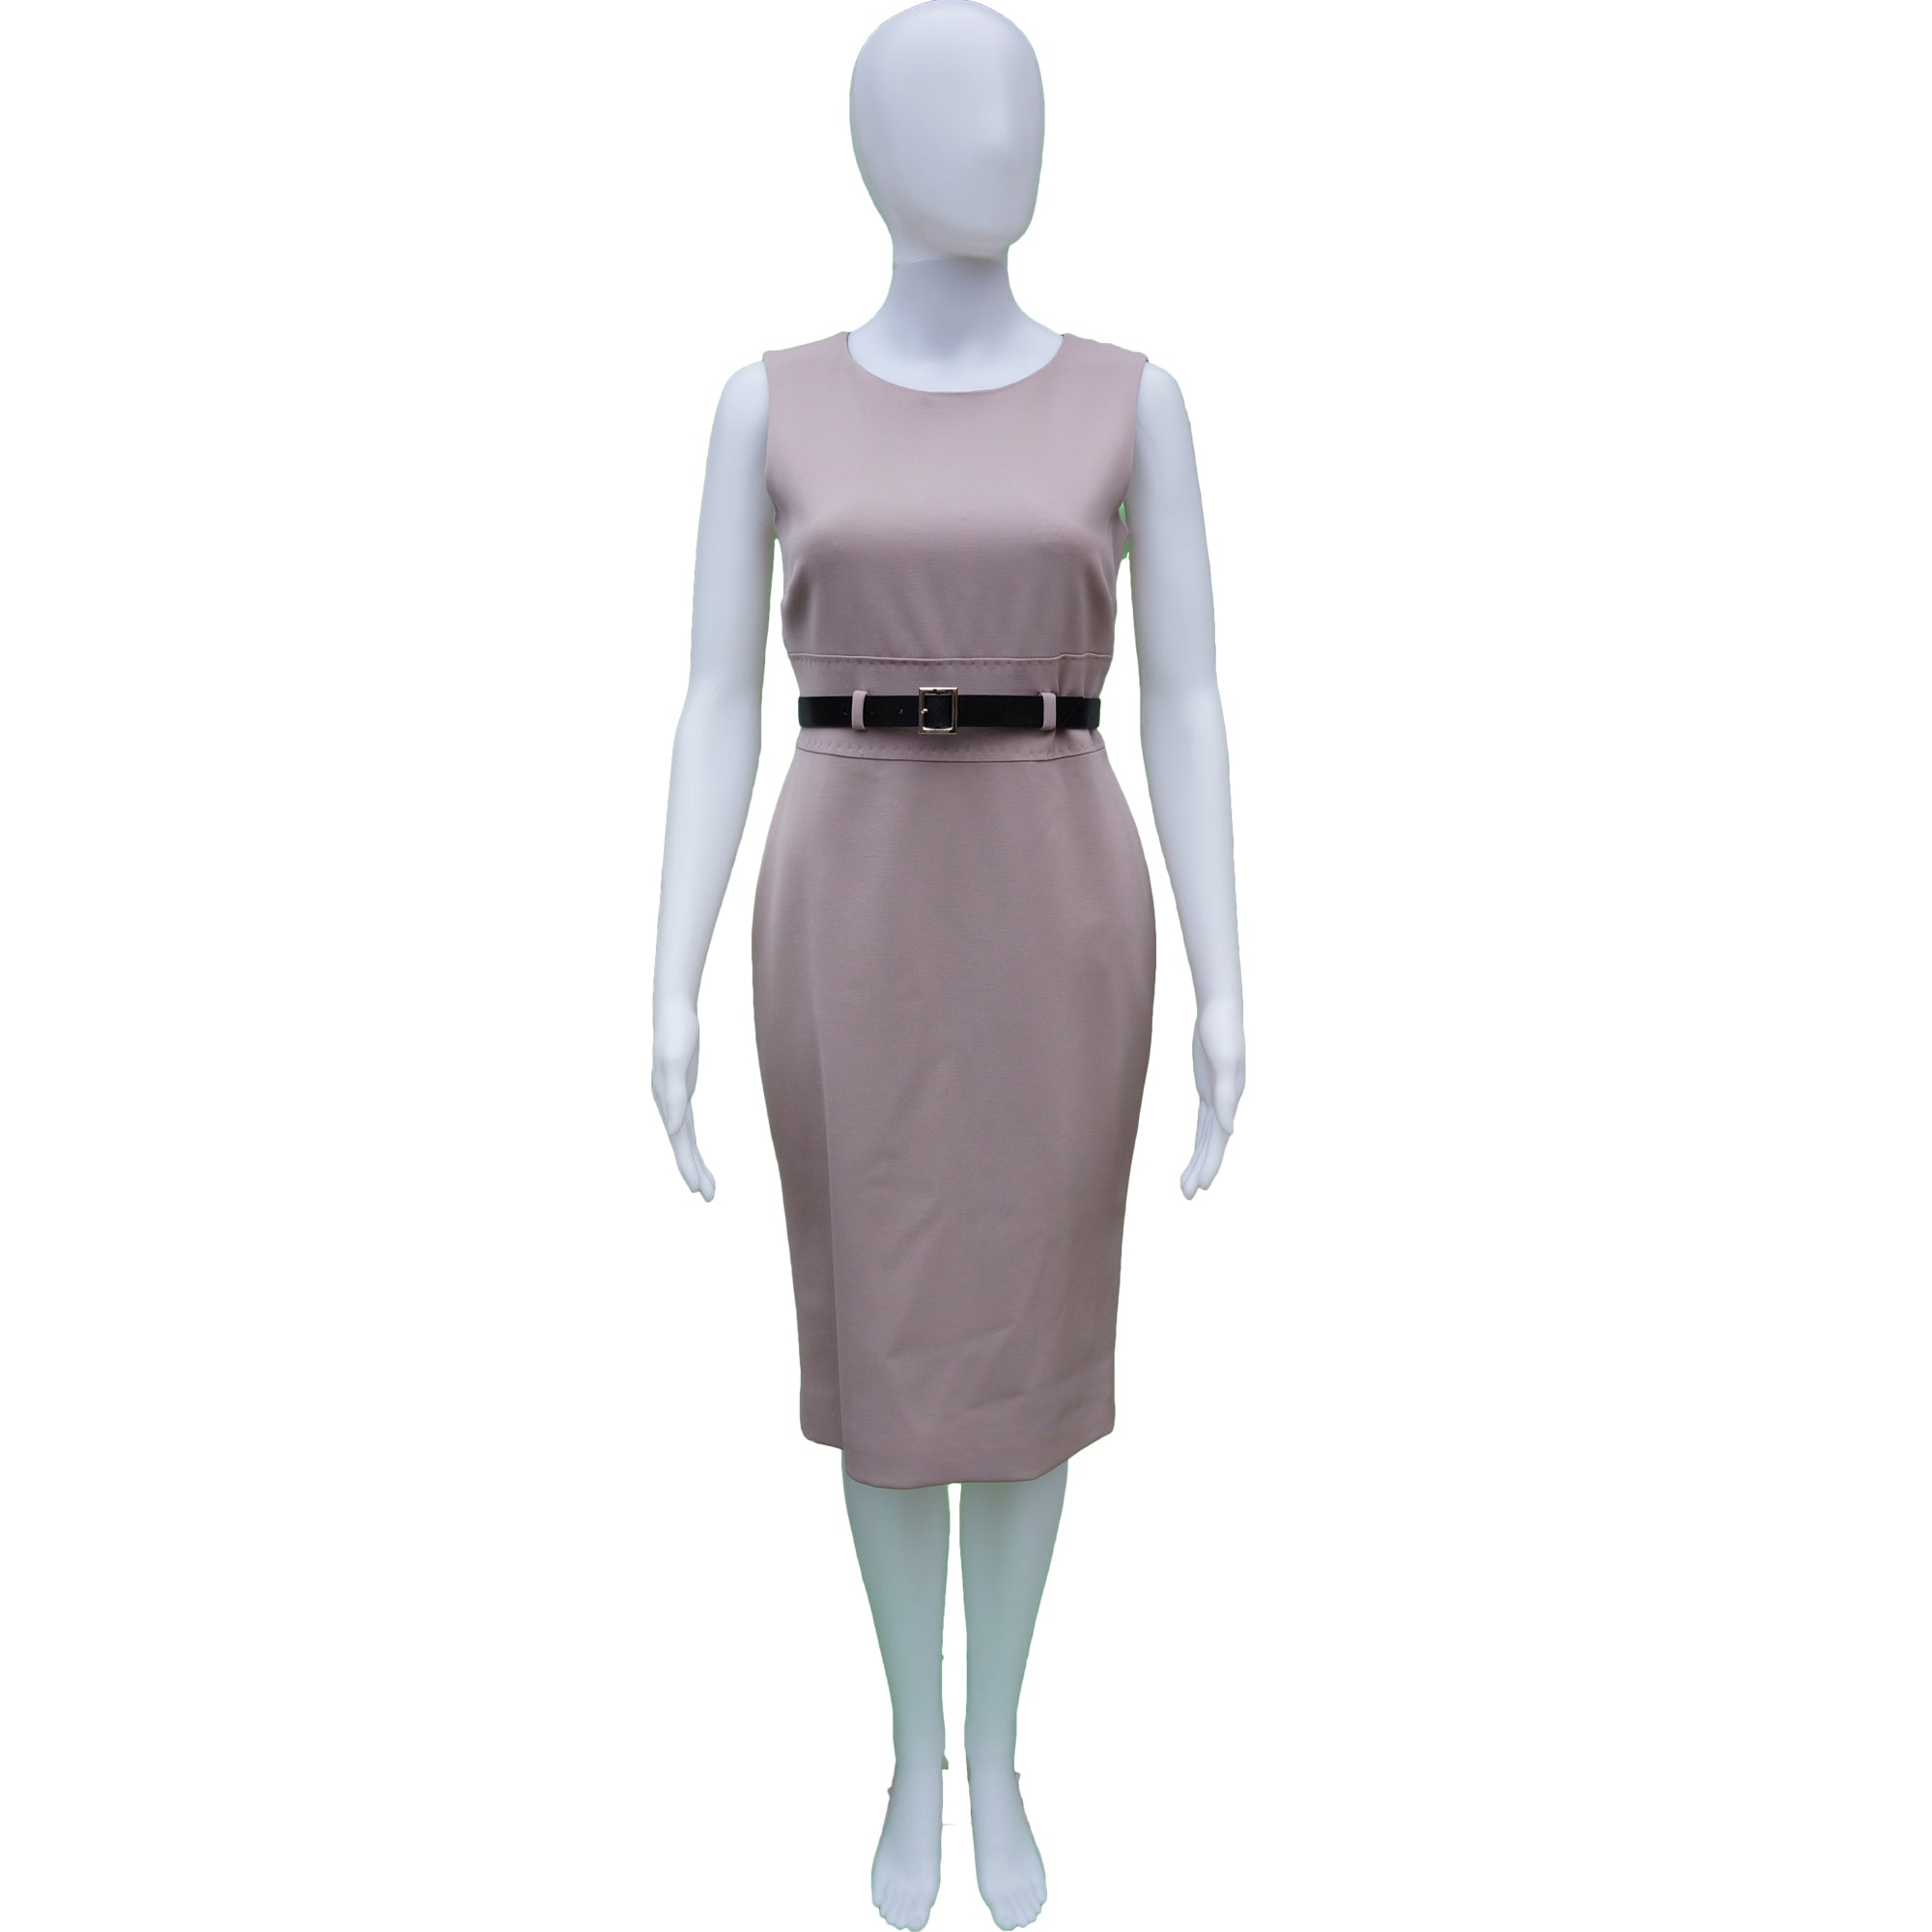 229a9e228c59 DOLCE & GABBANA BLUSH STRETCH WOOL SLEEVELESS DRESS Shop online the best  value on authentic designer ...